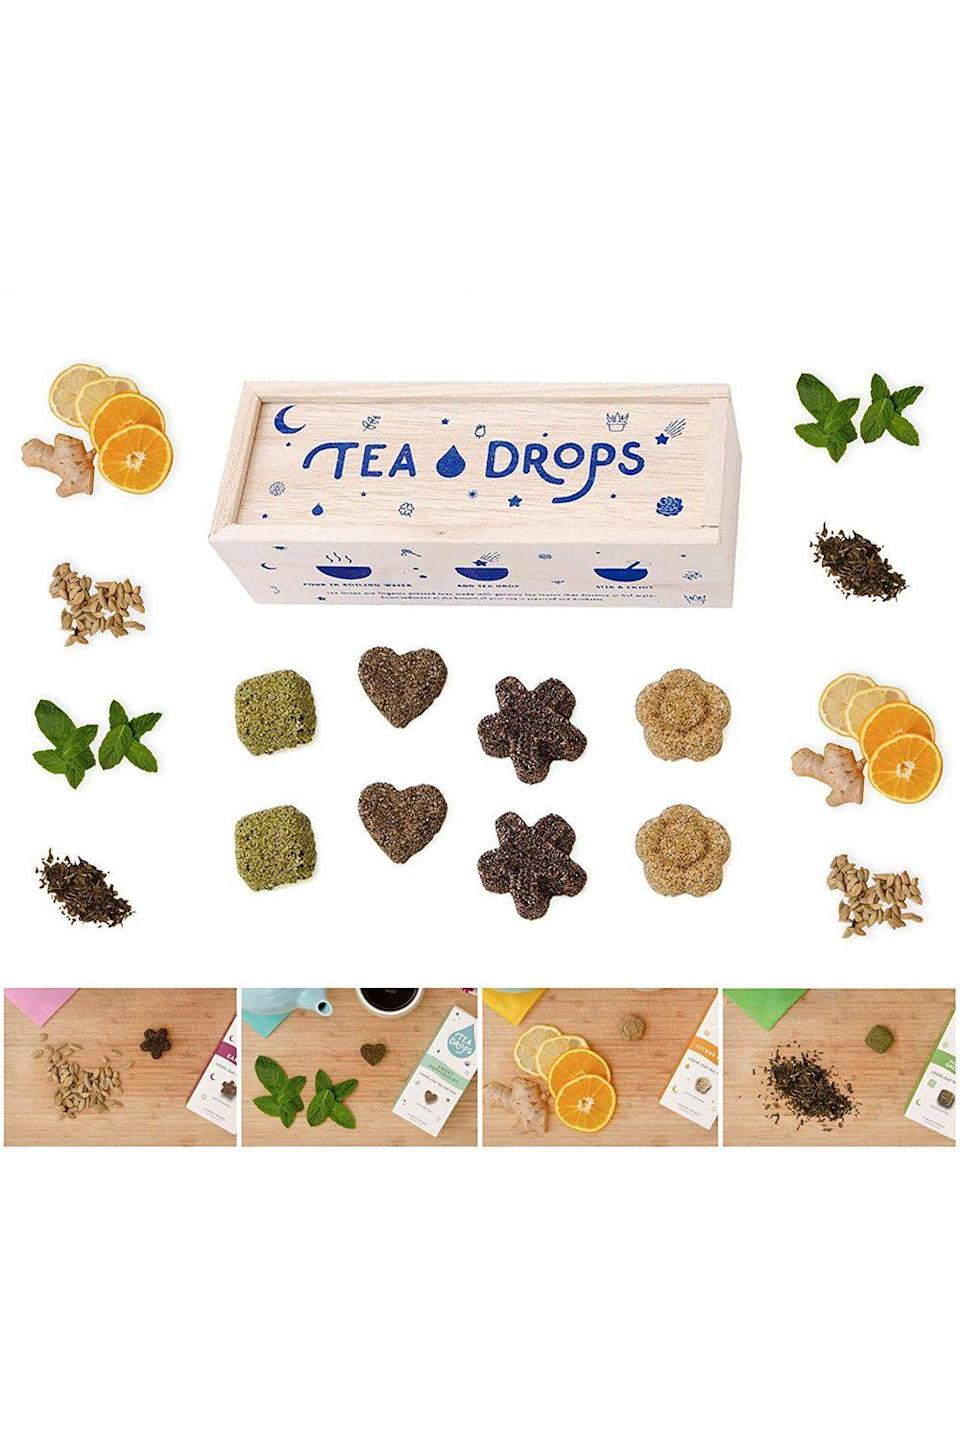 "<p><strong>Tea Drops </strong></p><p>amazon.com</p><p><strong>$16.99</strong></p><p><a href=""https://www.amazon.com/dp/B0155KFTHS?tag=syn-yahoo-20&ascsubtag=%5Bartid%7C10055.g.4670%5Bsrc%7Cyahoo-us"" rel=""nofollow noopener"" target=""_blank"" data-ylk=""slk:Shop Now"" class=""link rapid-noclick-resp"">Shop Now</a></p><p>Your favorite tea lover deserves more than just any ol' tea bag. Instead, give her a wooden box of assorted pressed teas in the shape of hearts, flowers, and stars. No tea strainer required.</p>"